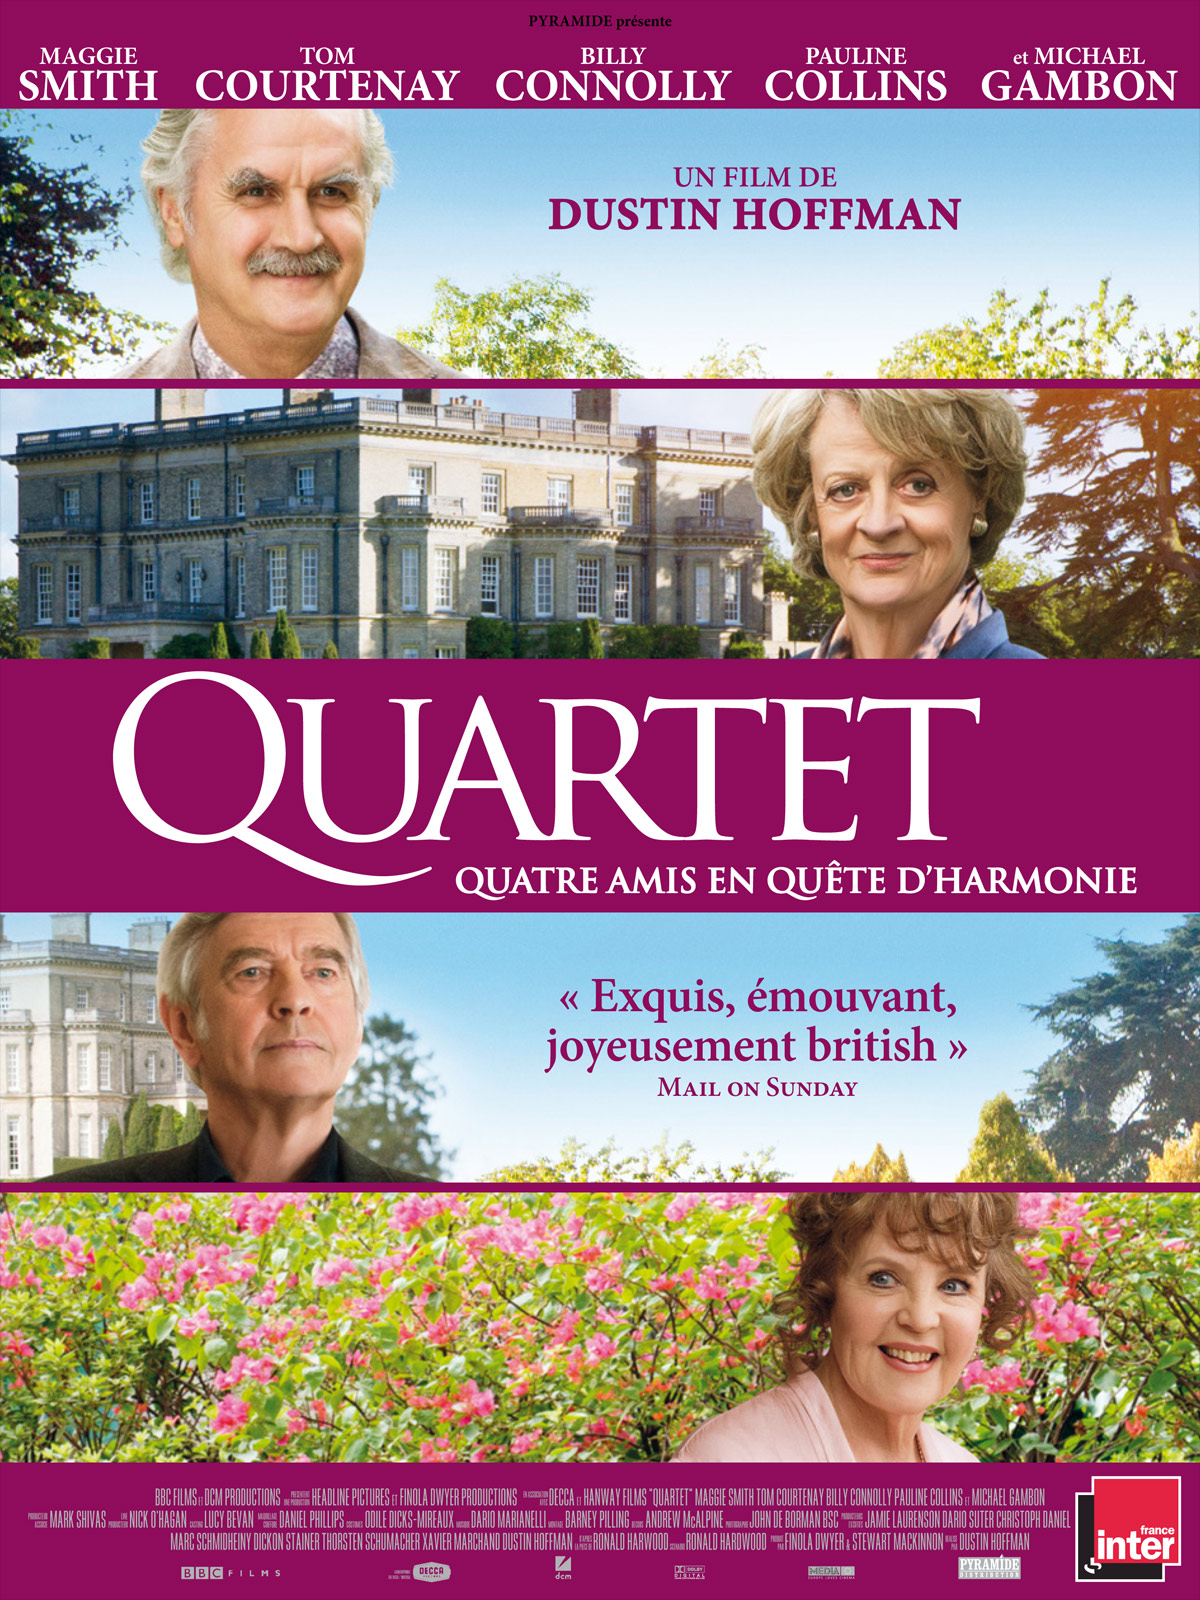 20492887 jpgQuartet Movie